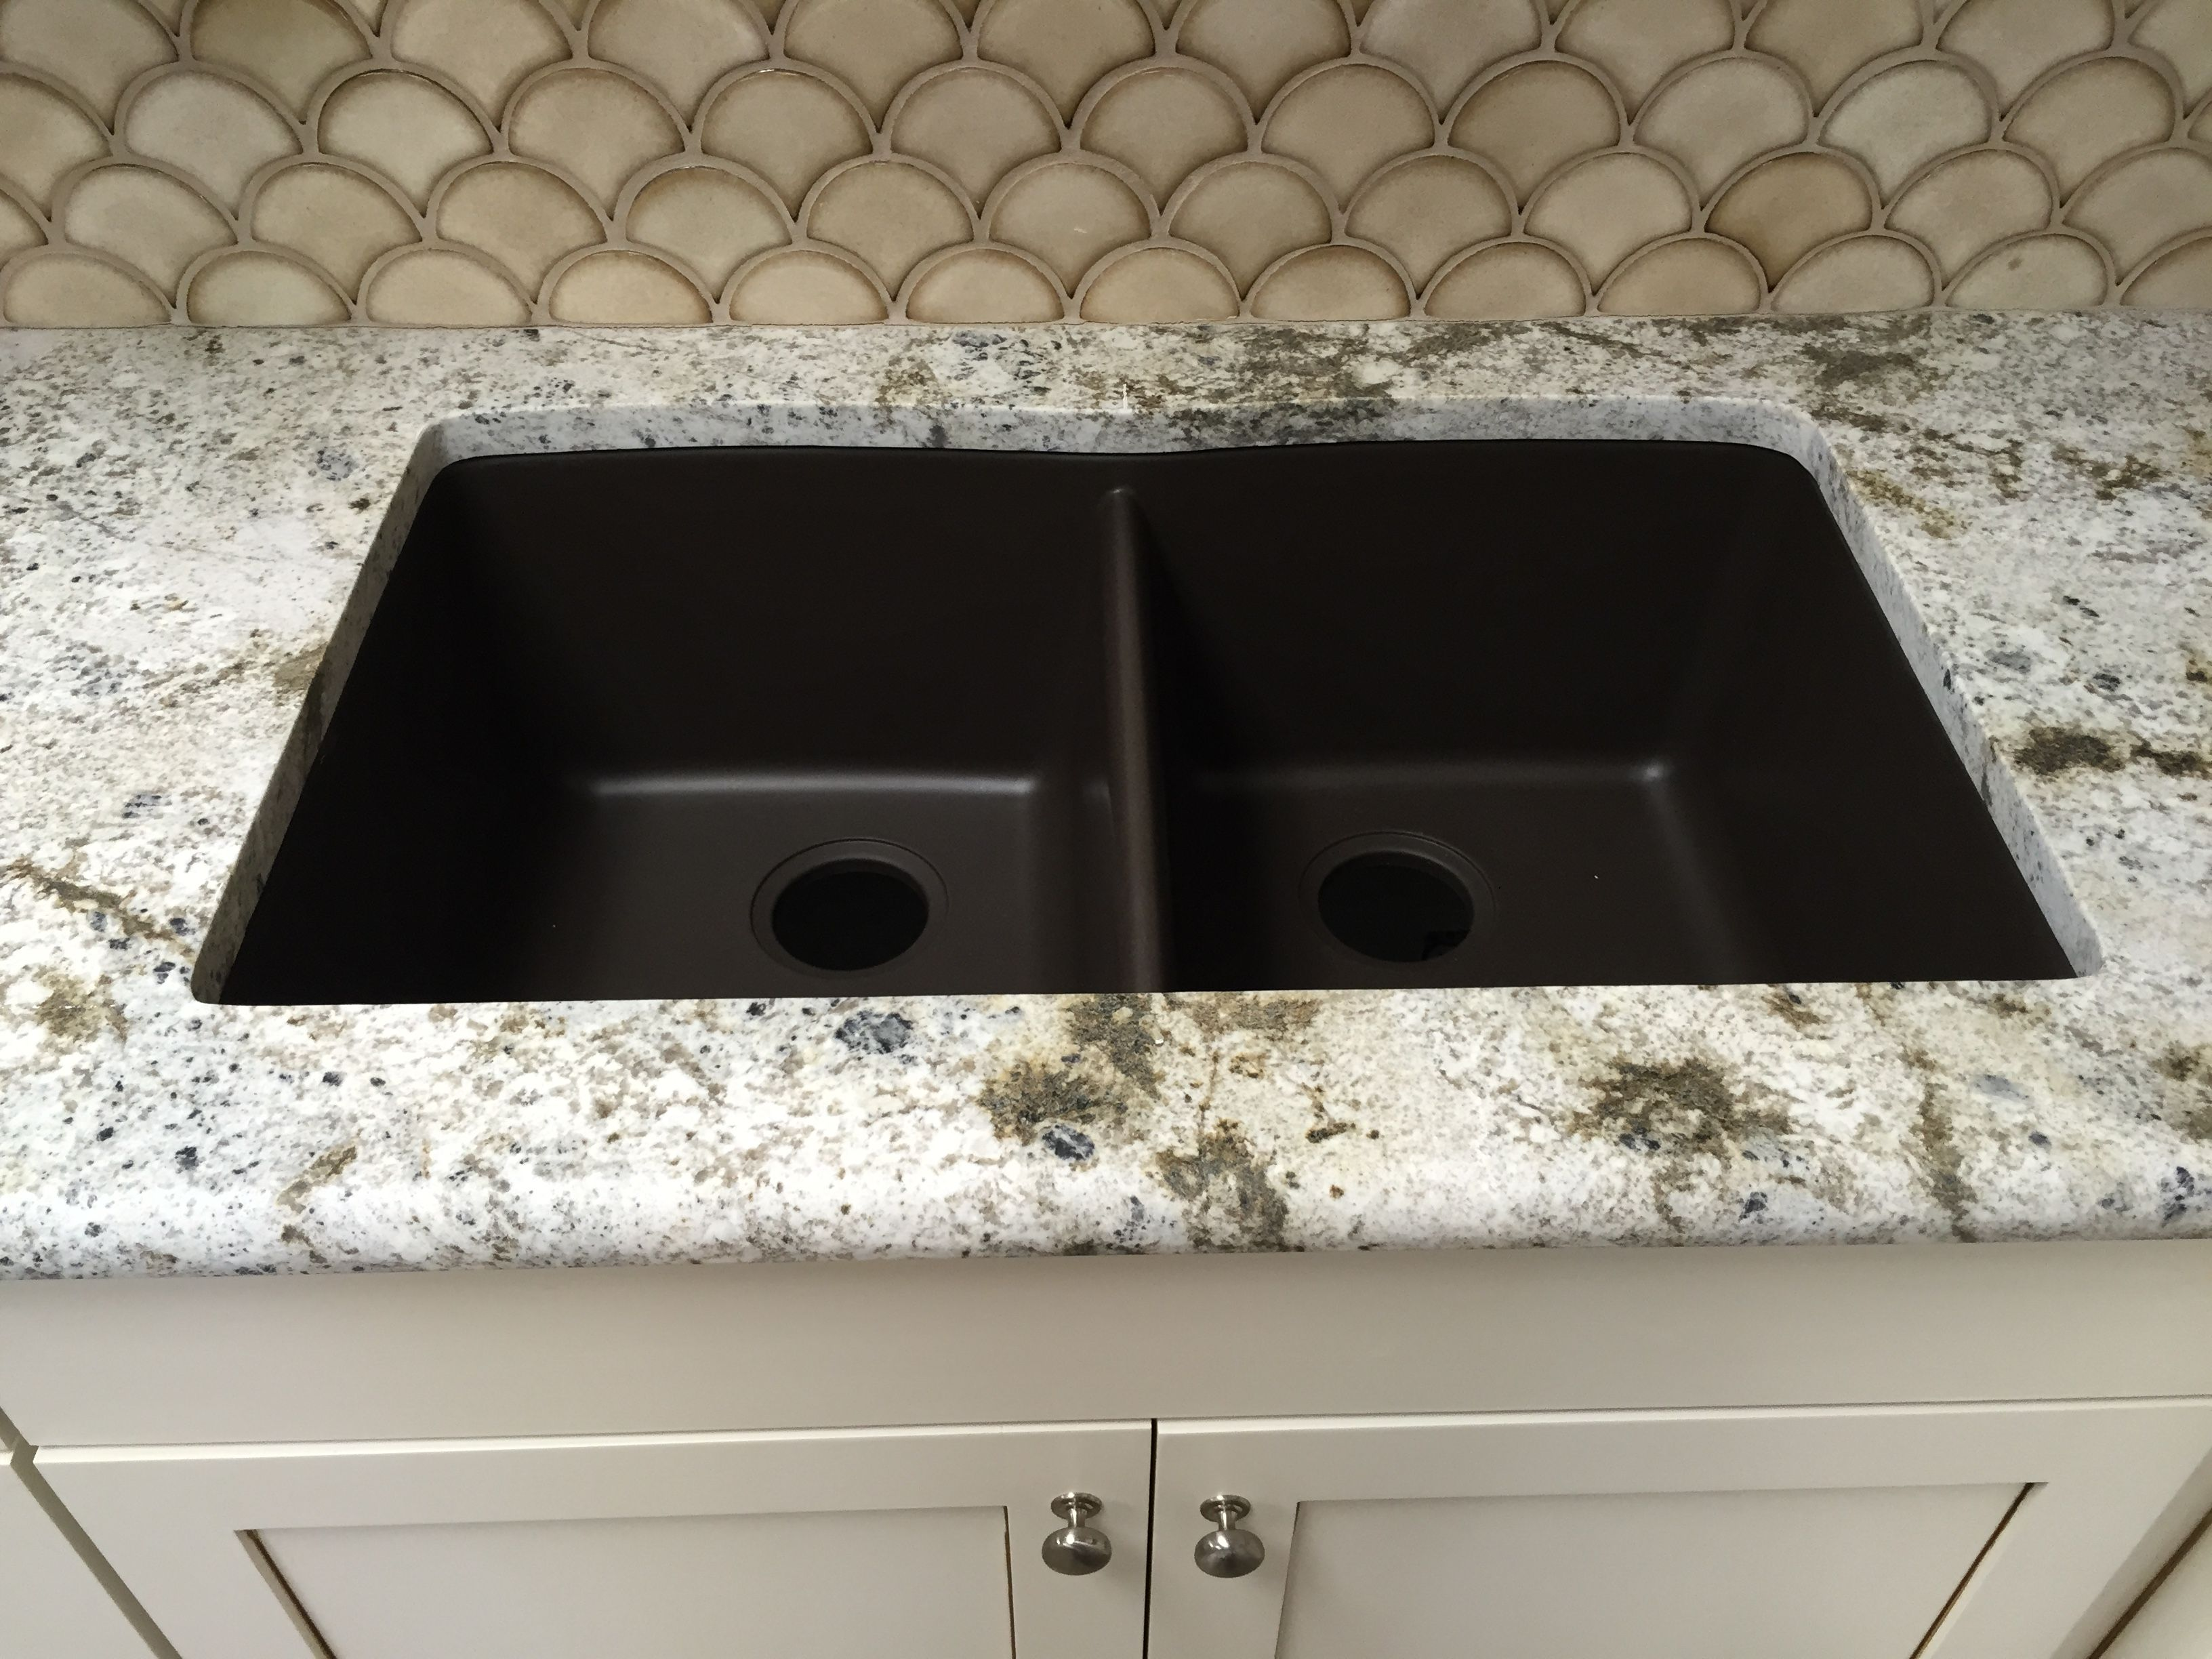 Mocha brown granite composite undermount kitchen sink | Granite ...